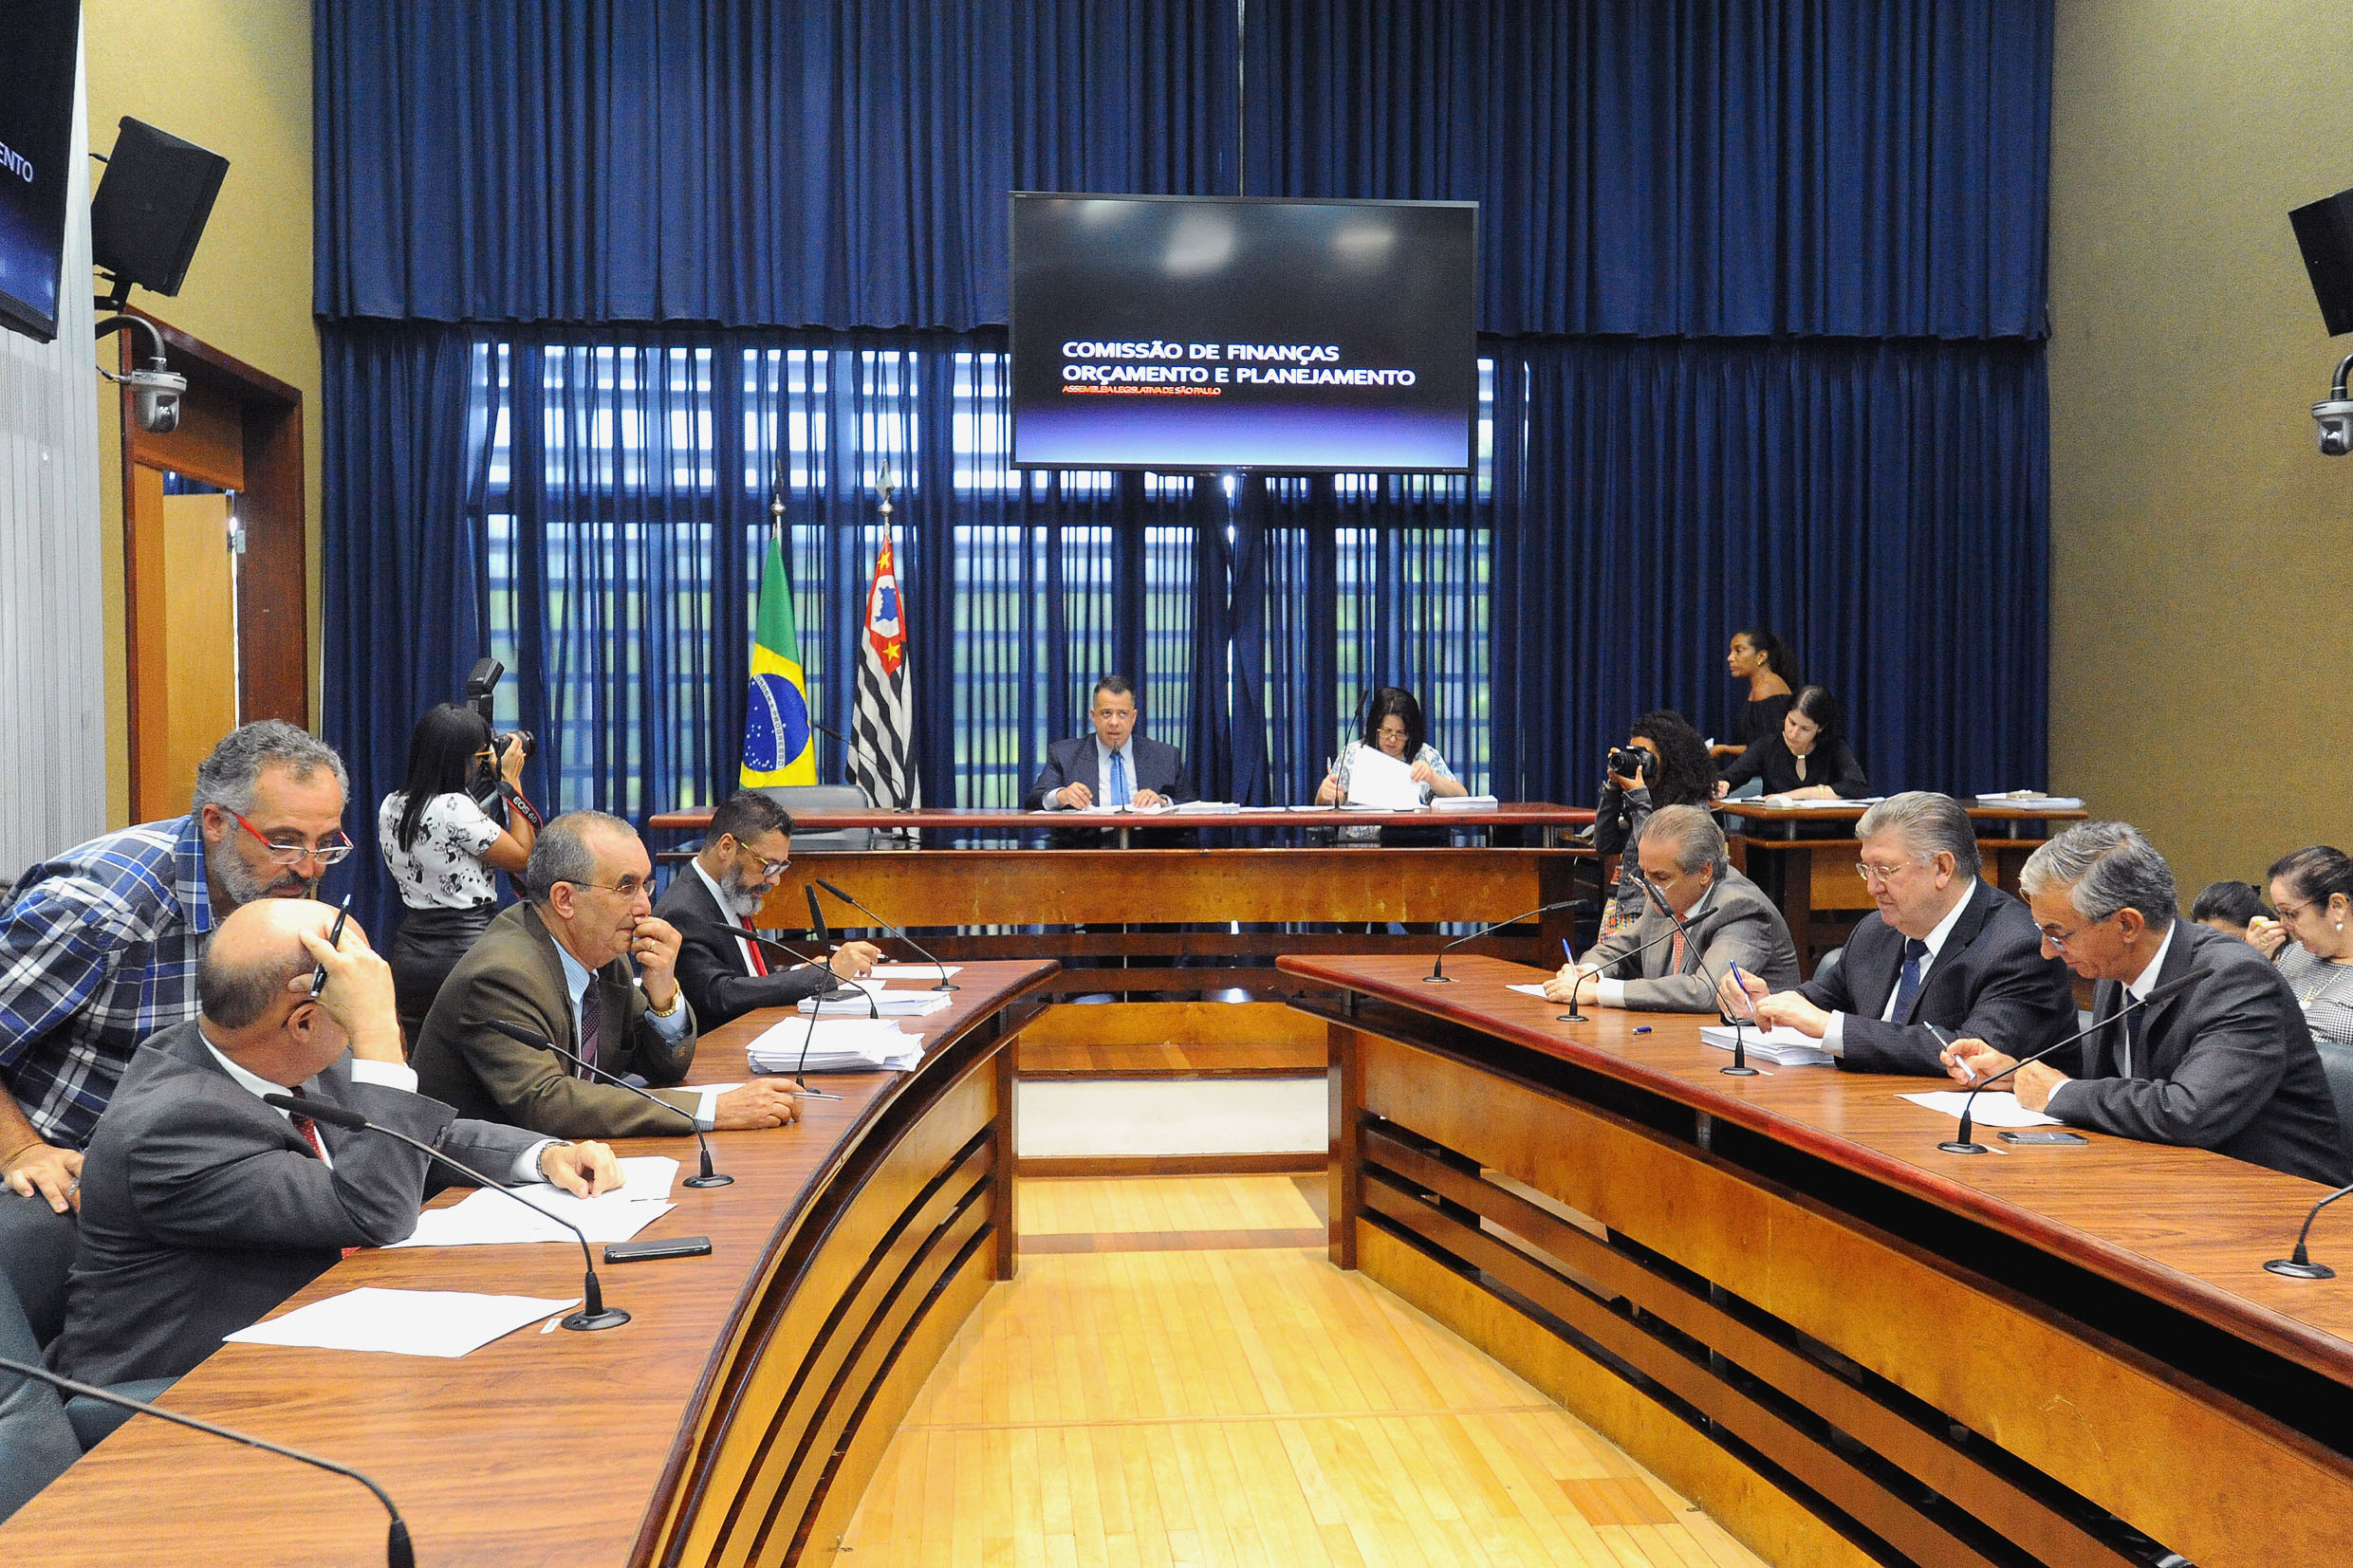 Parlamentares na comissão <a style='float:right' href='https://www3.al.sp.gov.br/repositorio/noticia/N-12-2018/fg228734.jpg' target=_blank><img src='/_img/material-file-download-white.png' width='14px' alt='Clique para baixar a imagem'></a>